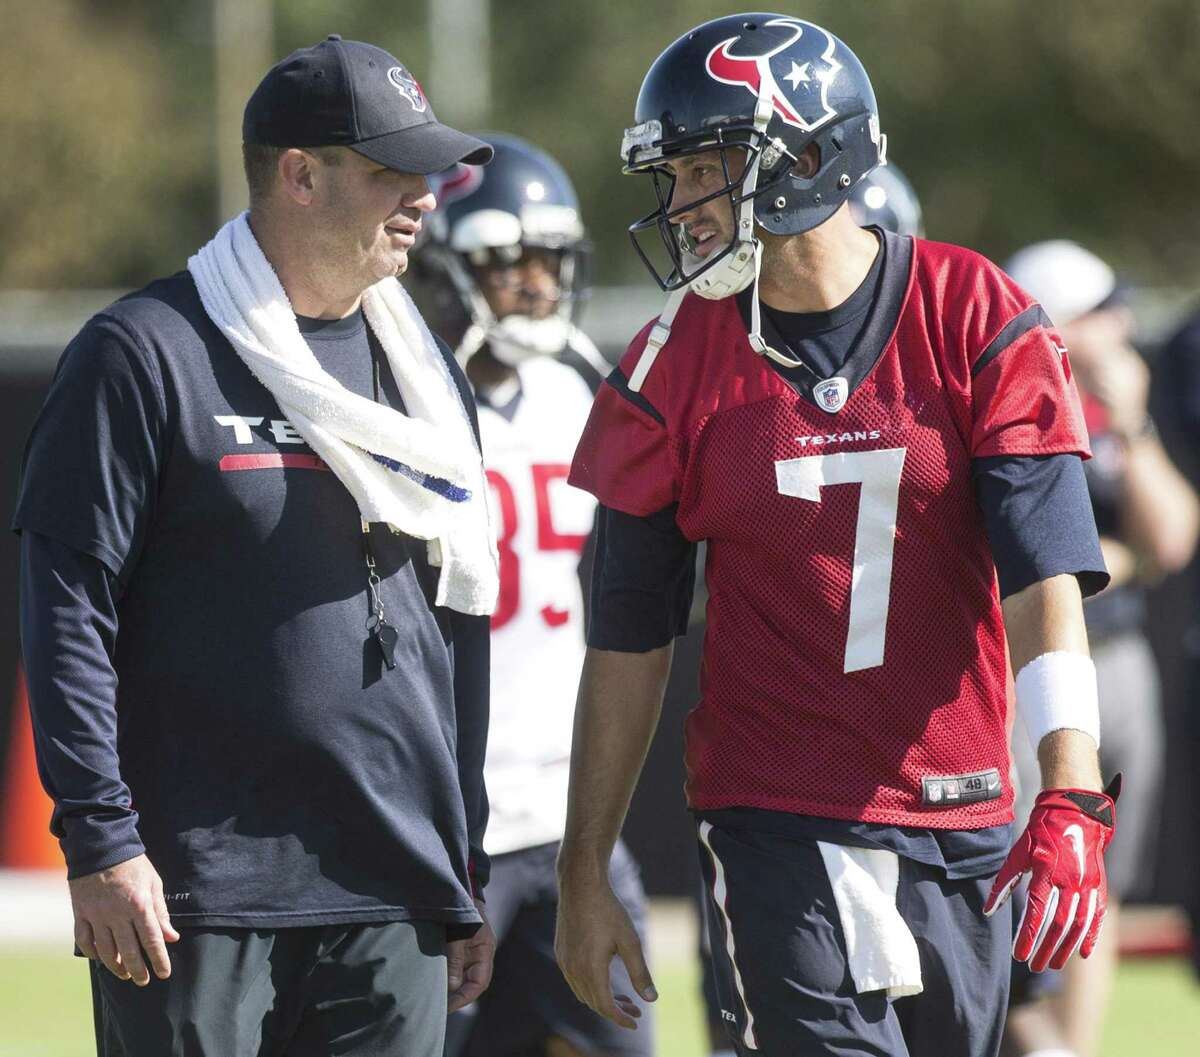 Texans coach Bill O'Brien earns a vote of confidence from Brian Hoyer, right, who was O'Brien's quarterback in 2015 and now backs up Tom Brady with the Patriots.